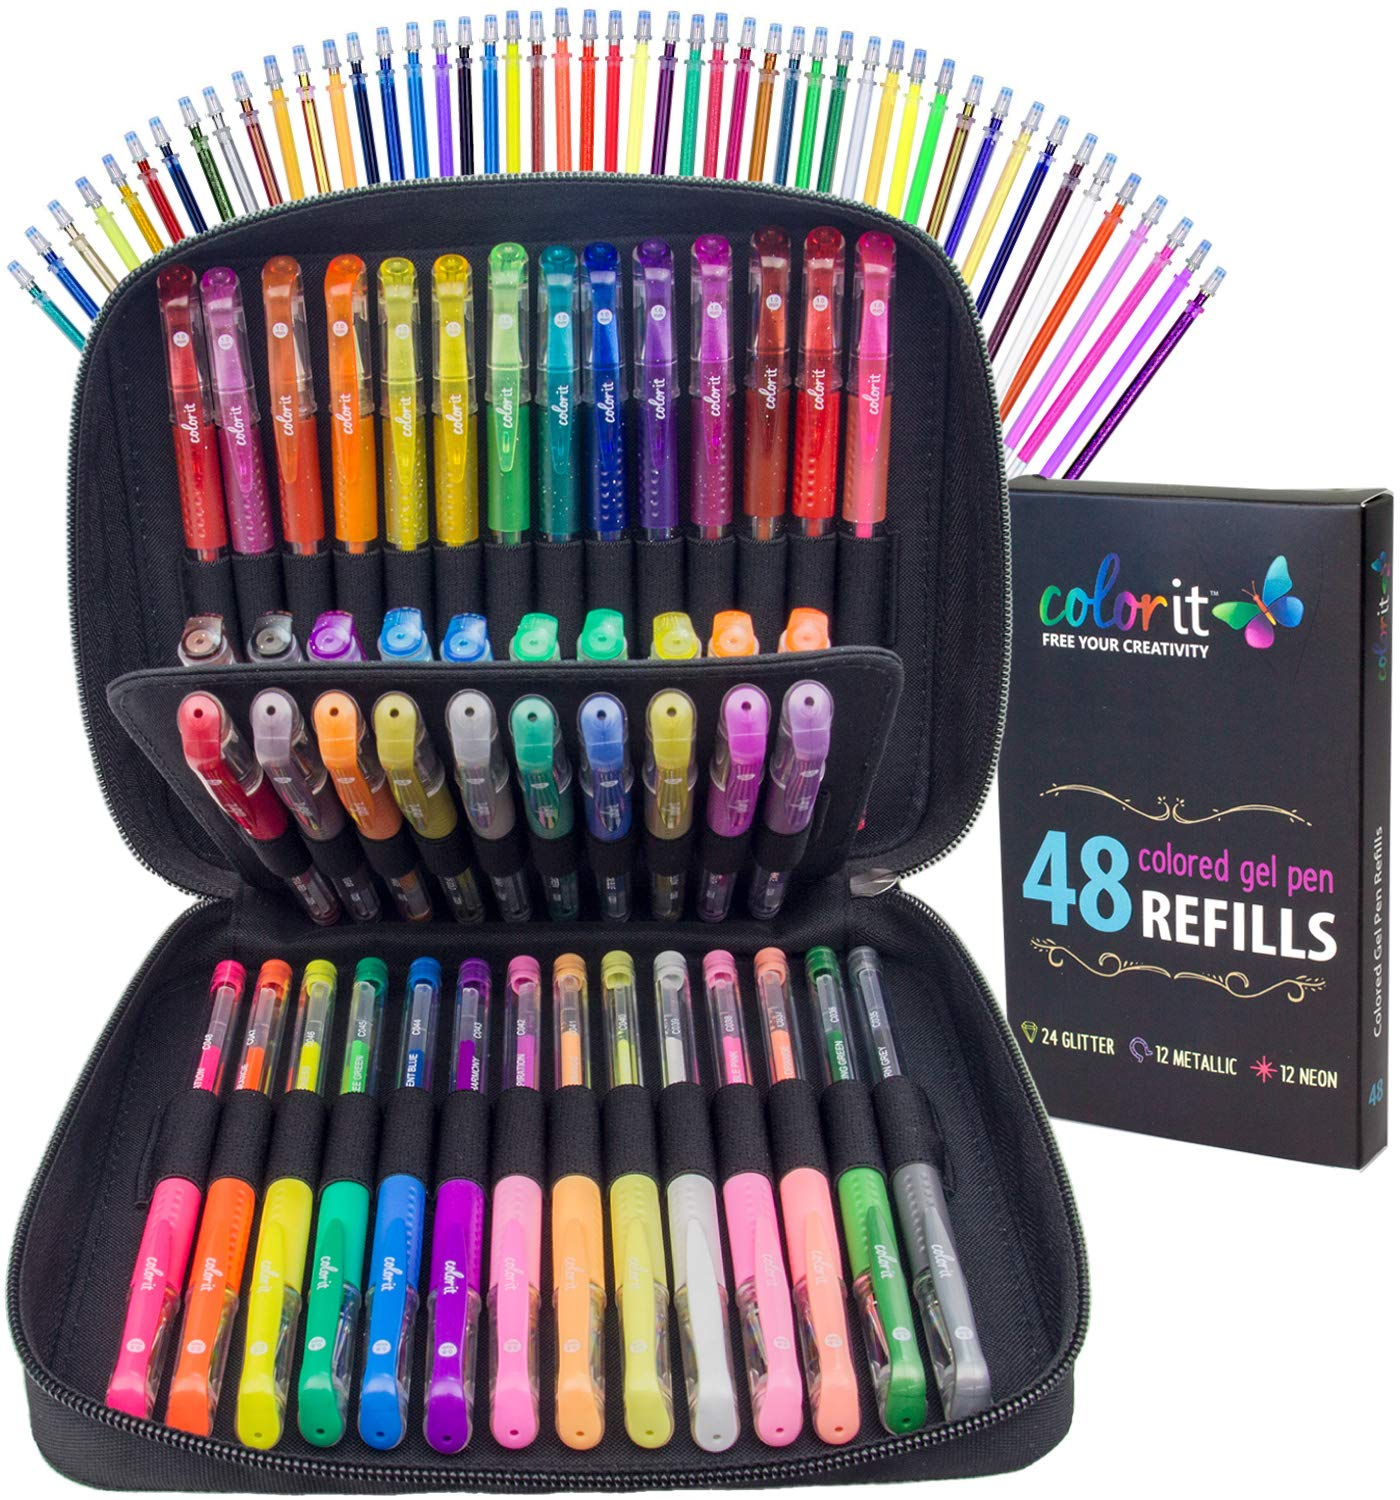 ColorIt Gel Pens For Adult Coloring Books – Premium Ink Gel Pens Set With Case Includes 48 Artist Quality Coloring Pens: 24 Glitter, 12 Metallic, 12 Neon Plus 48 Matching Refills For 96 Total Pieces by ColorIt (Image #1)